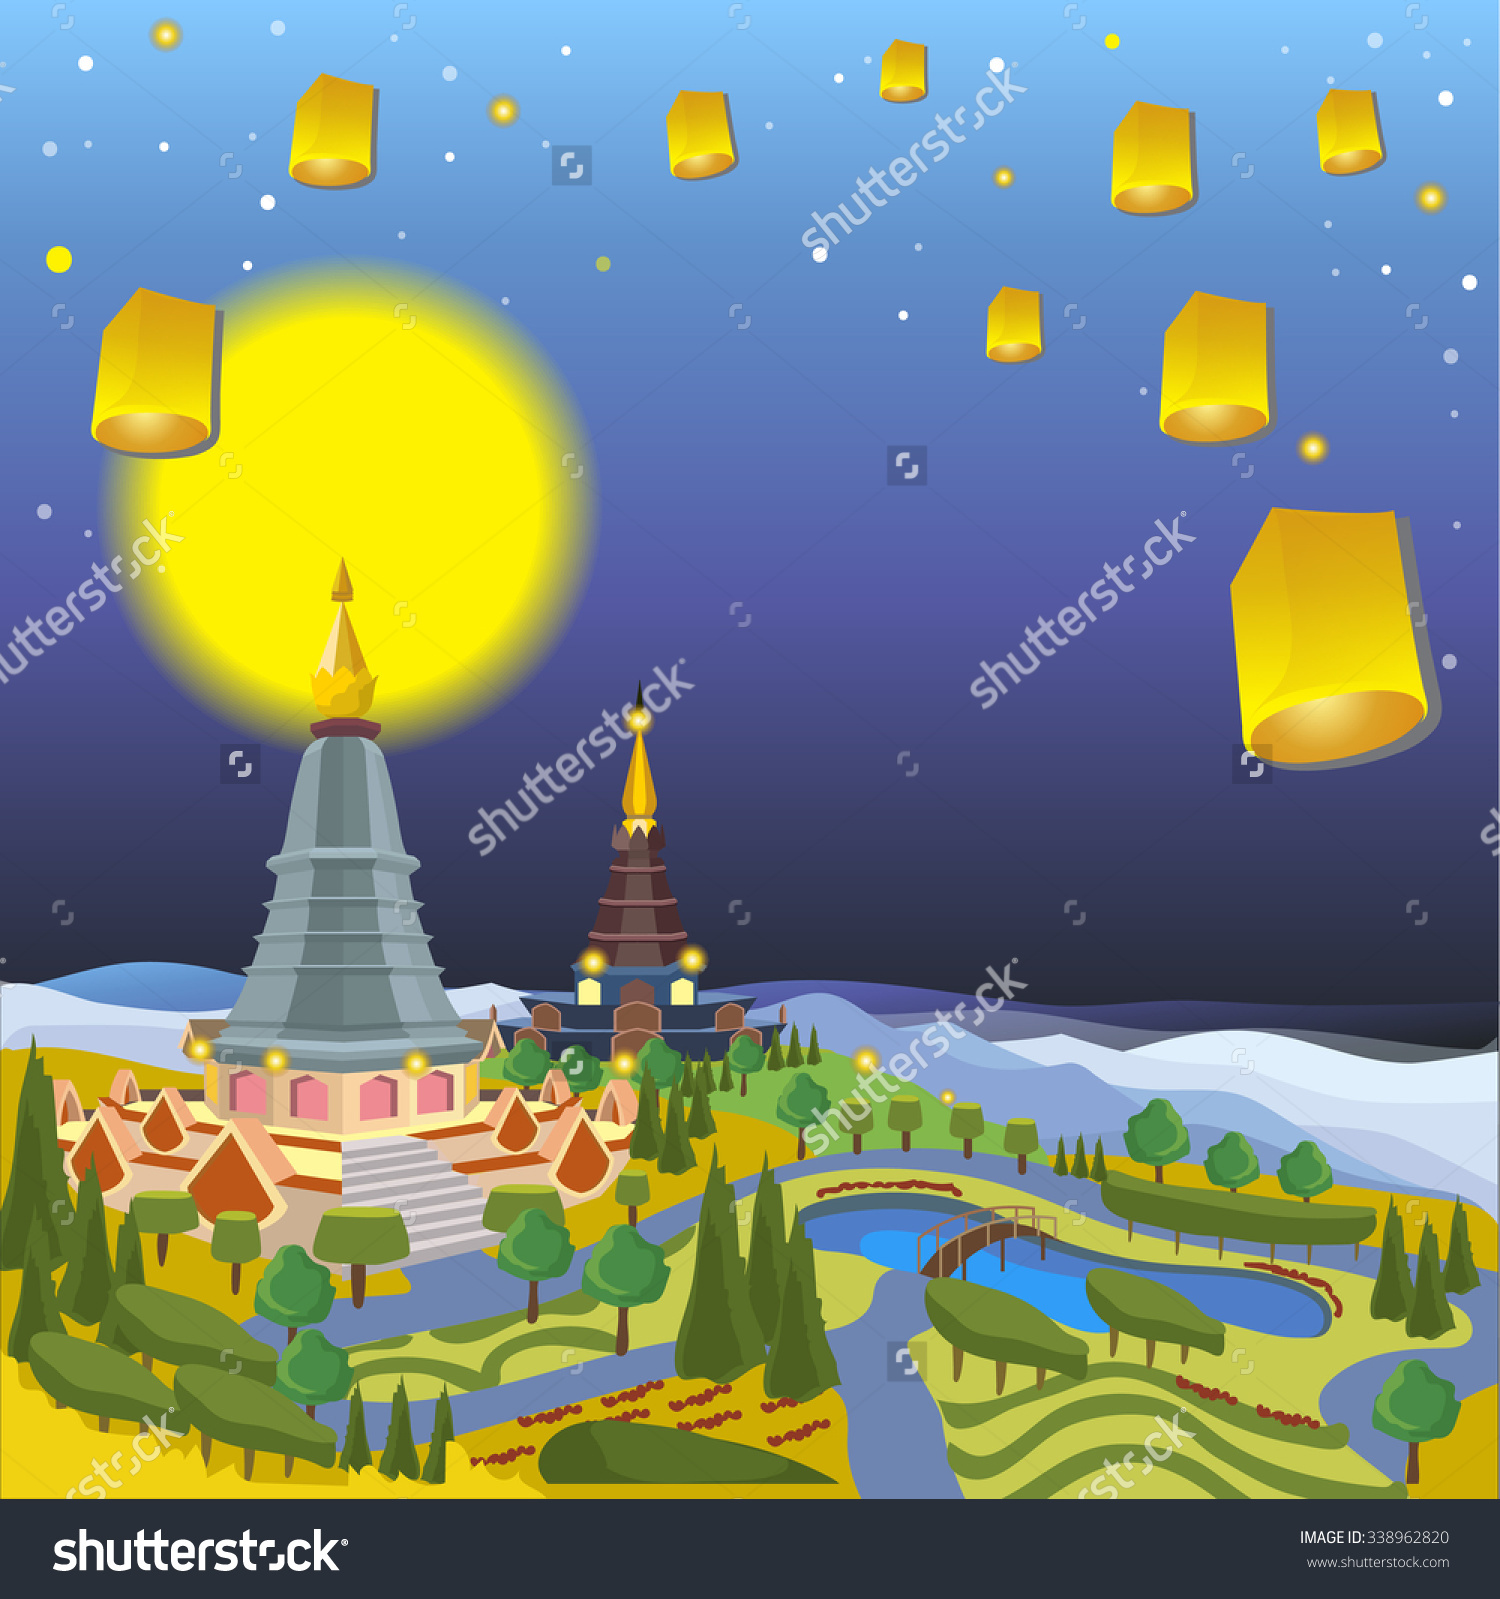 Chiang Mai Loy Krathongthailand Full Moon Stock Vector 338962820.